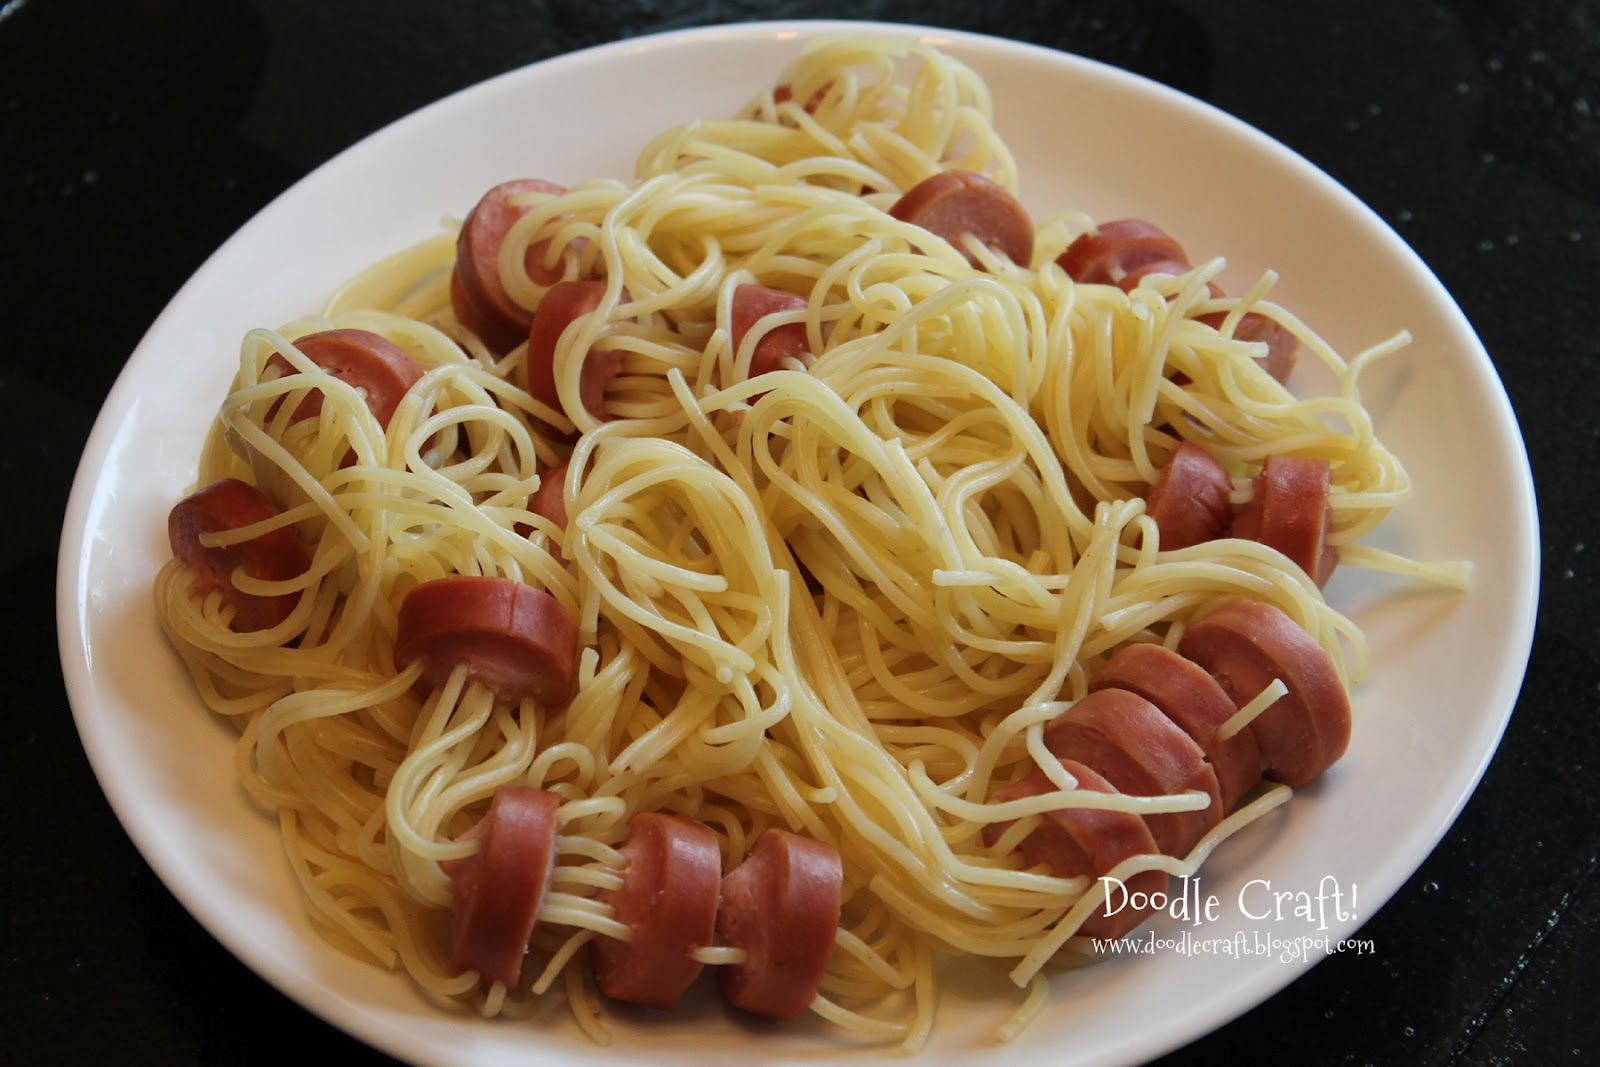 Hot Dog And Spaghetti Spiders